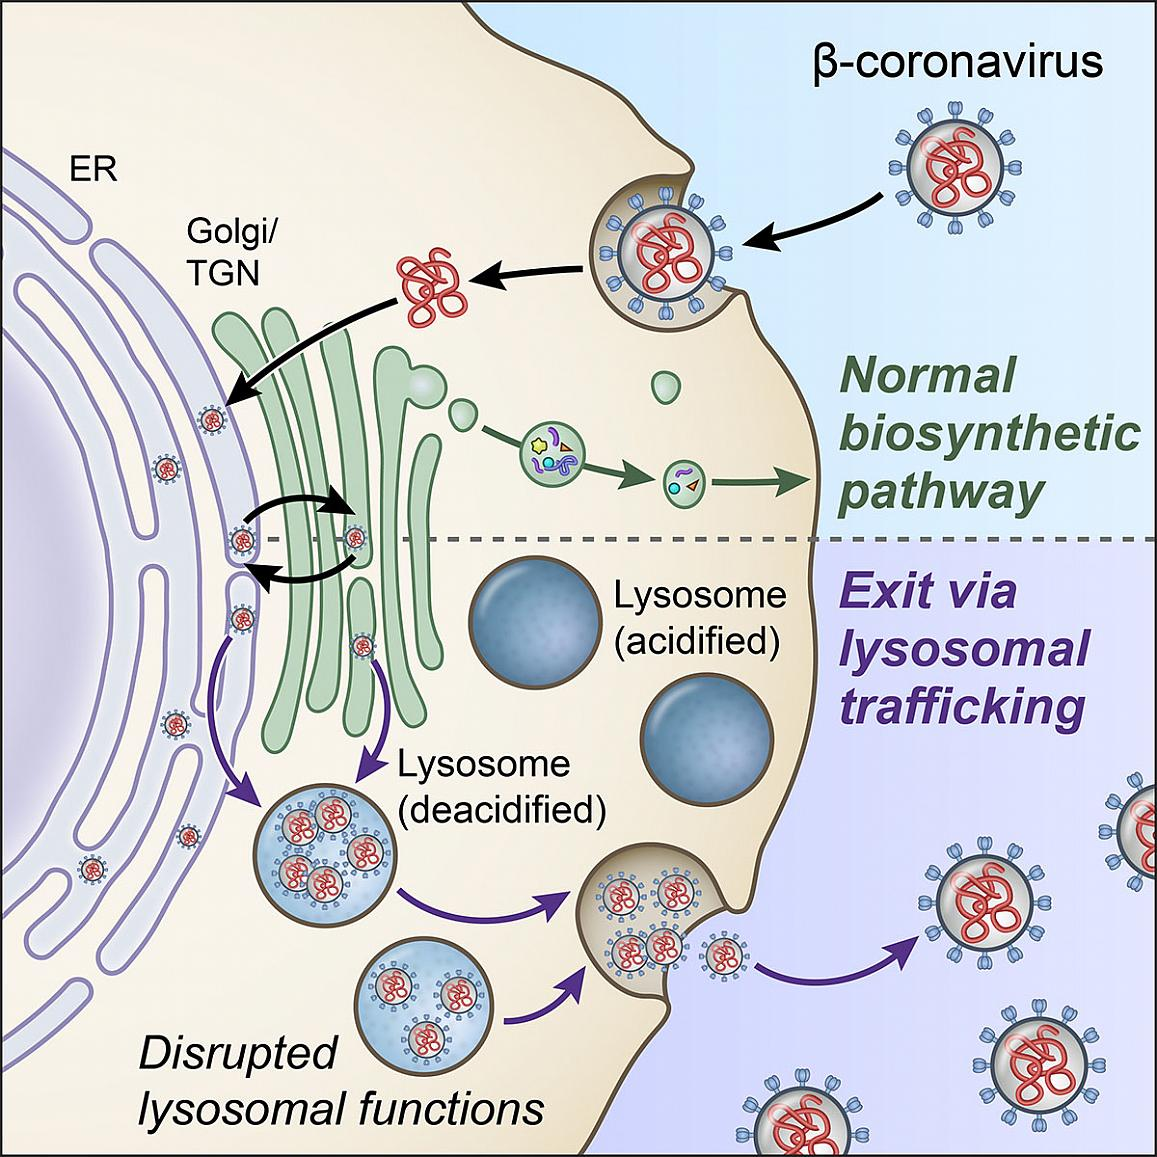 An illustration of the process by which the coronavirus exits a healthy cell.